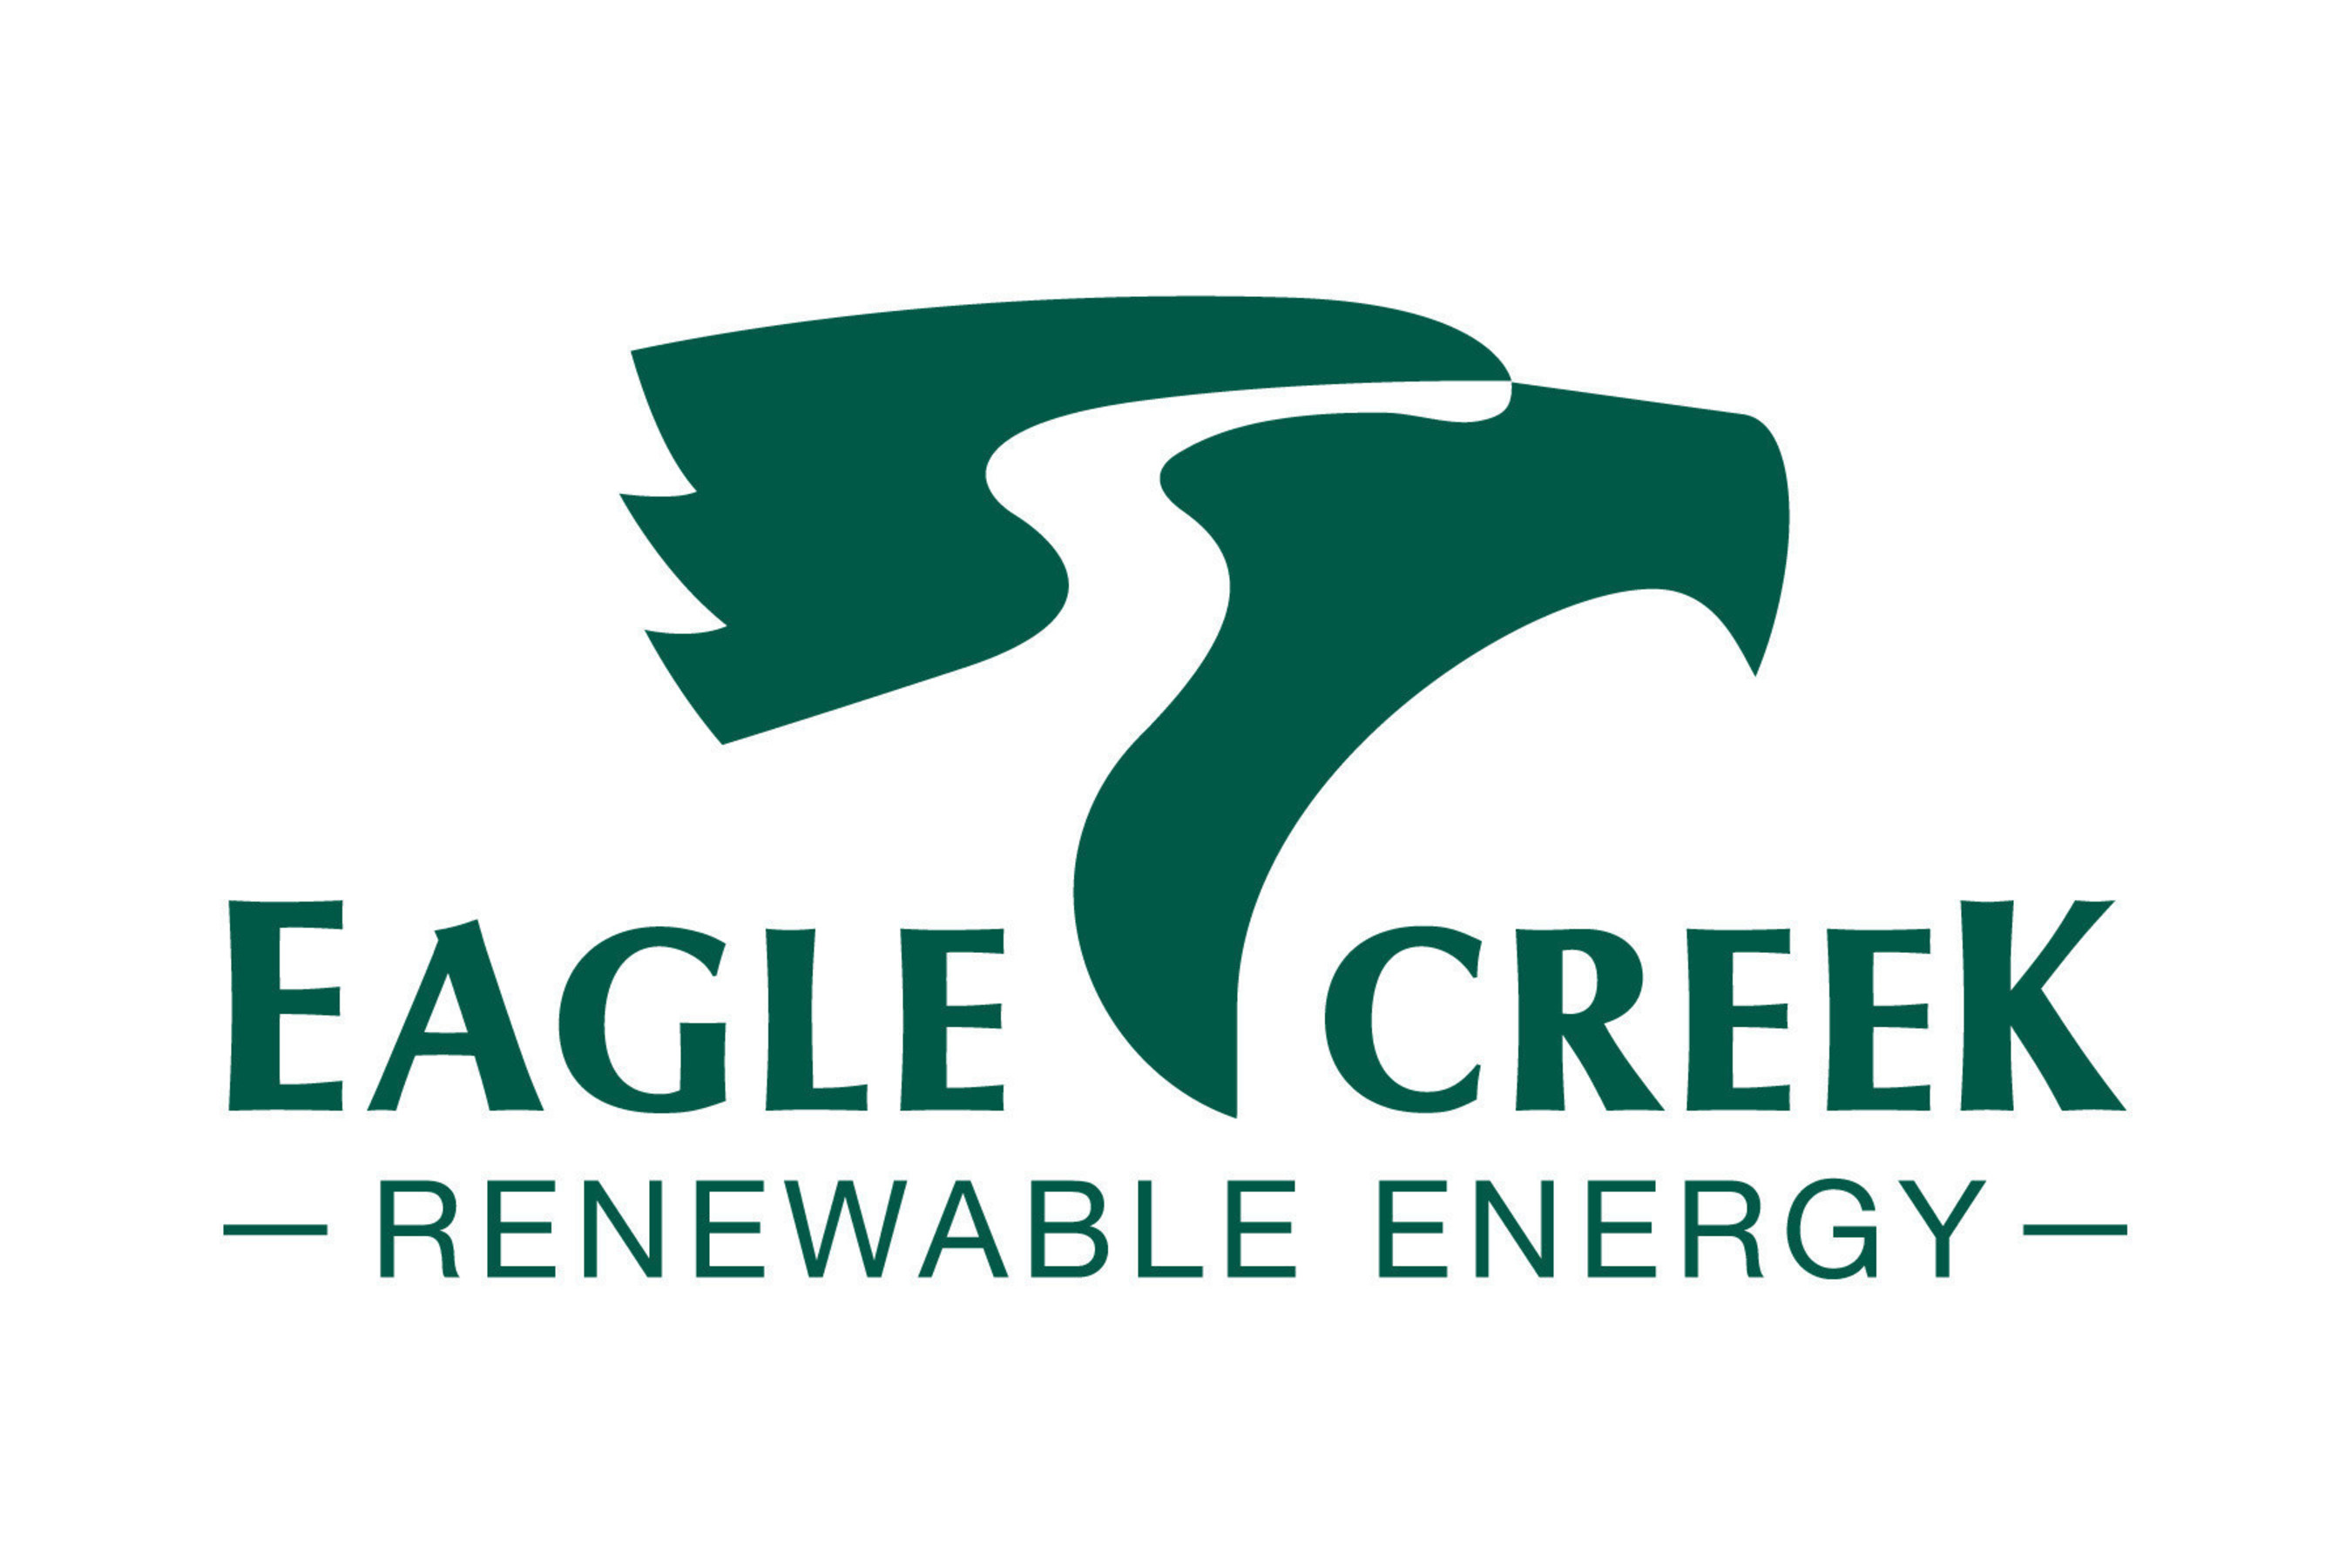 Eagle Creek Acquires 30 Mw Of Hydroelectric Generation